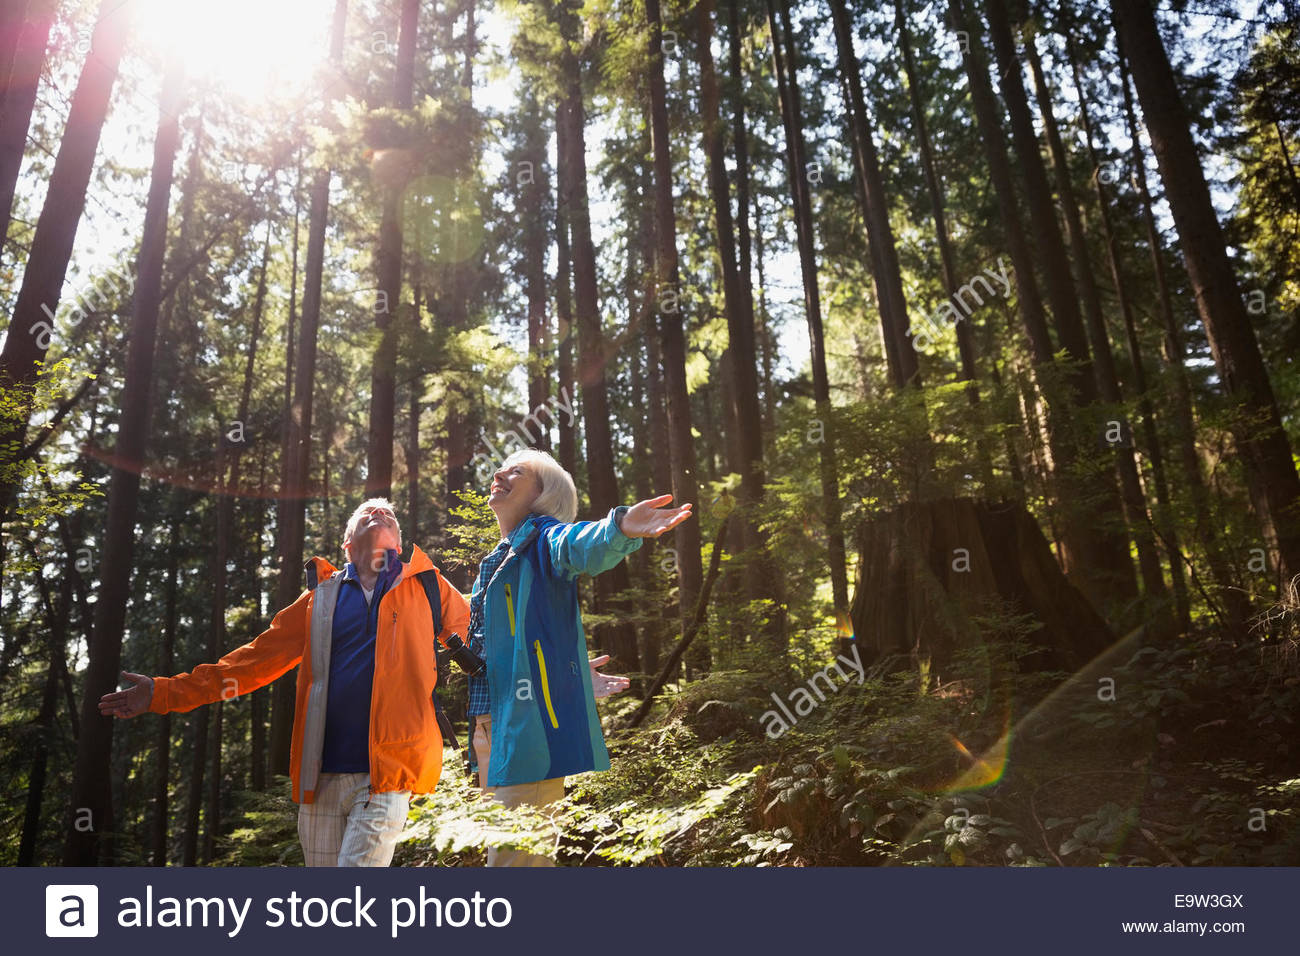 Senior couple with arms outstretched in sunny woods - Stock Image